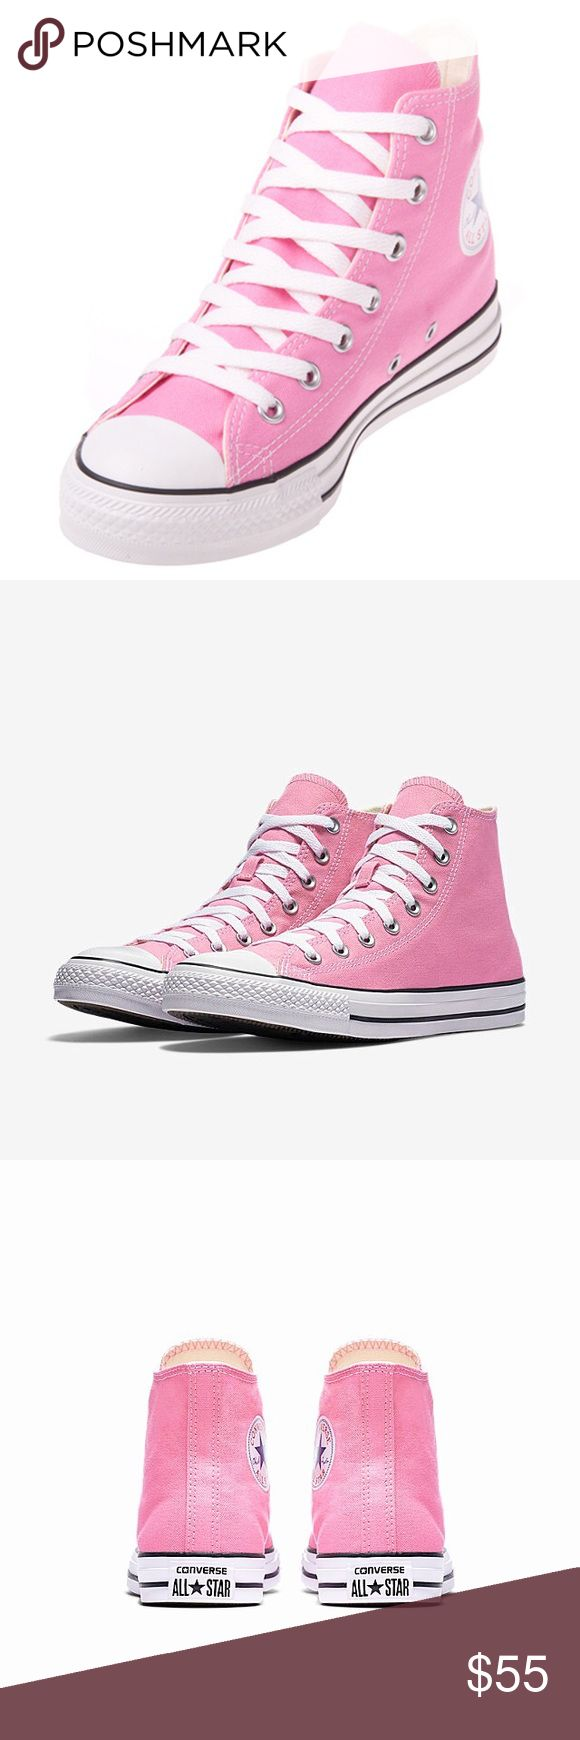 Pink High Top Converse! Brand New !!! Pink converse All-Star Chuck Taylor High Top Sneakers. New,never worn. Converse Shoes Sneakers